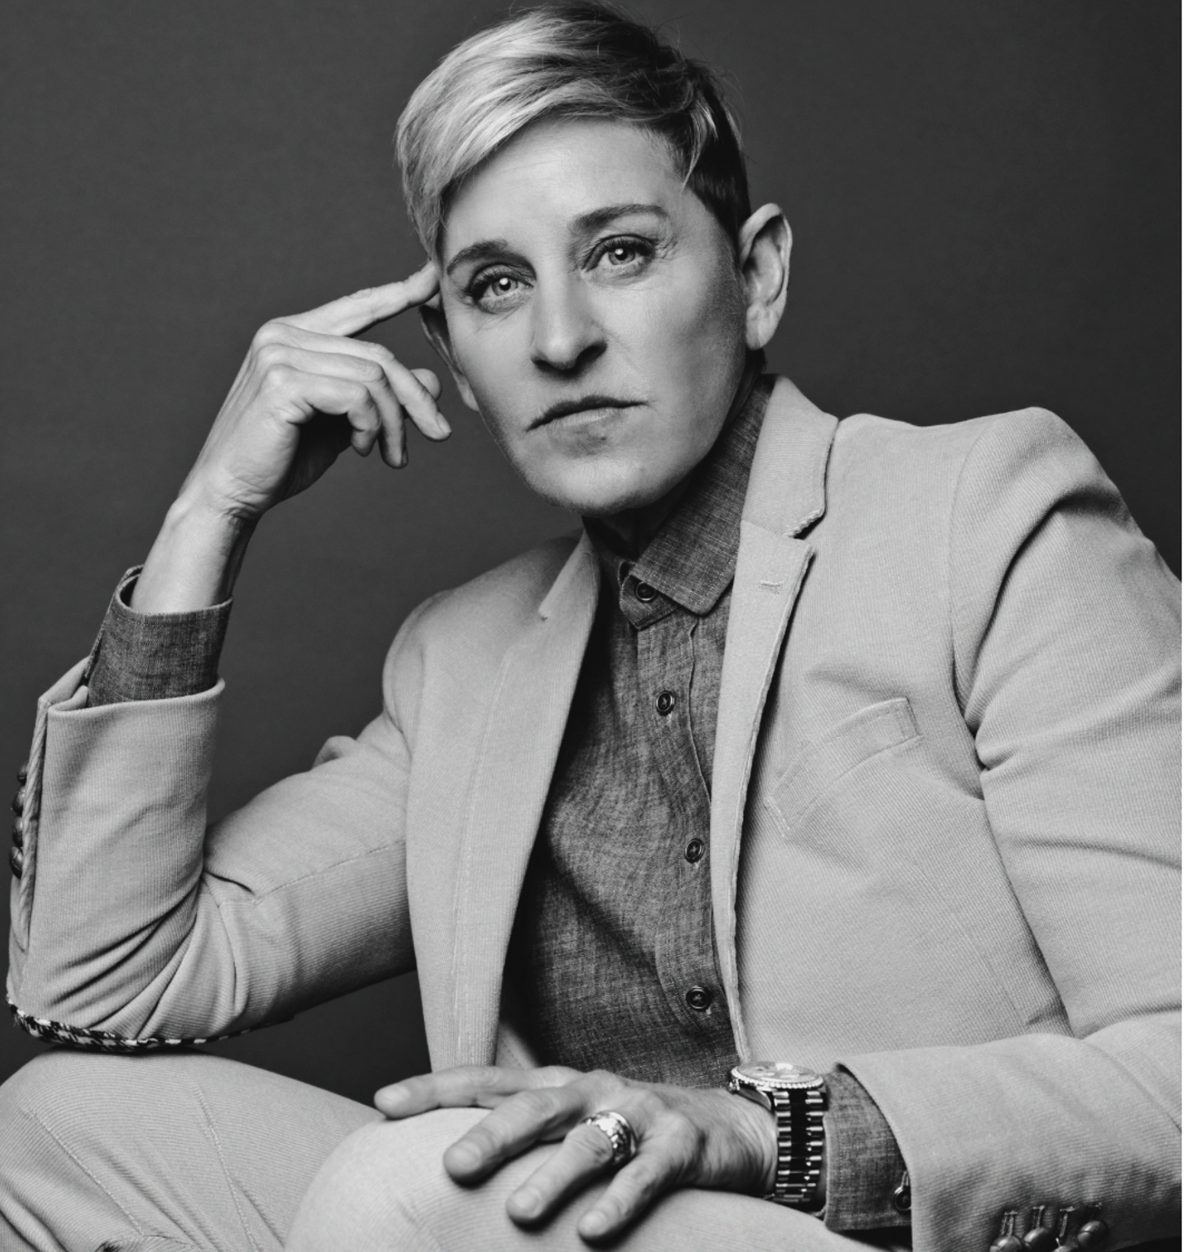 Information about the work environment in 'The Ellen DeGeneres Show' continues to surface. Here is the most recent claim.